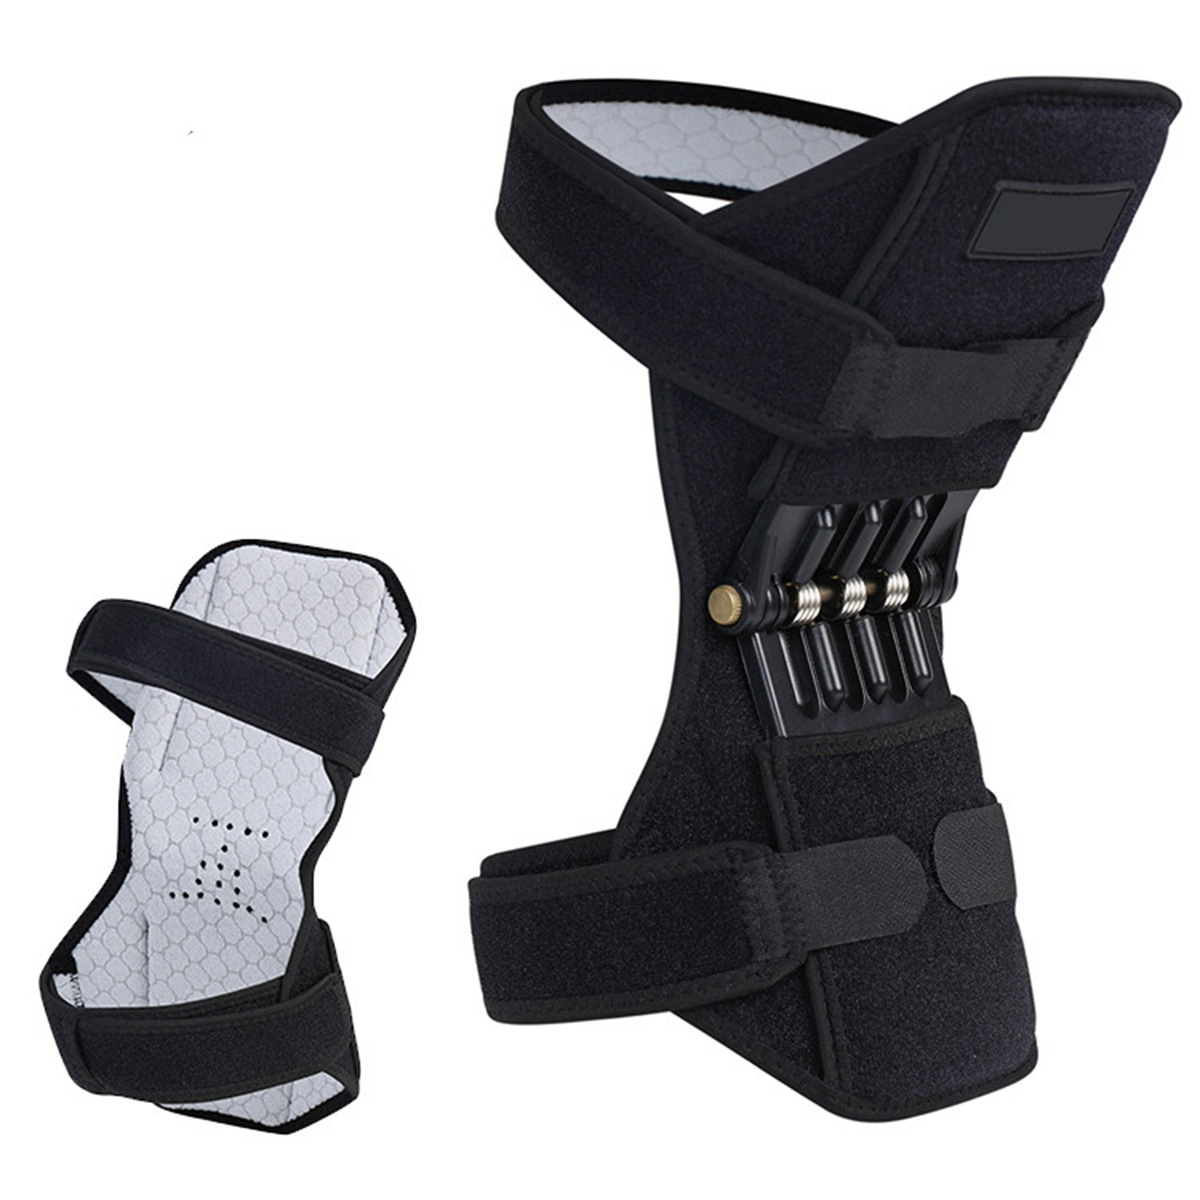 1Pcs Joint Support Knee Pads Rebound Power Spring Force Knee Stabilizer Power Lift Brace Knee Support Leg Care Treatment Tool